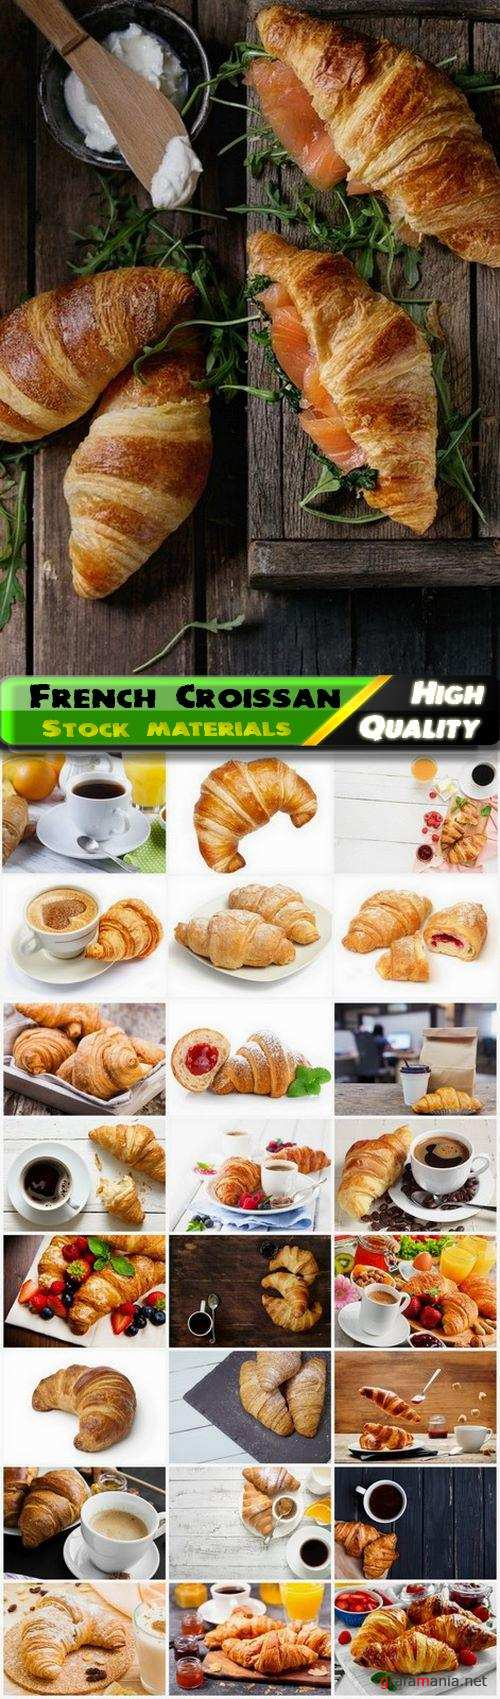 Nacional French dishes Croissant with jam and coffee 25 HQ Jpg